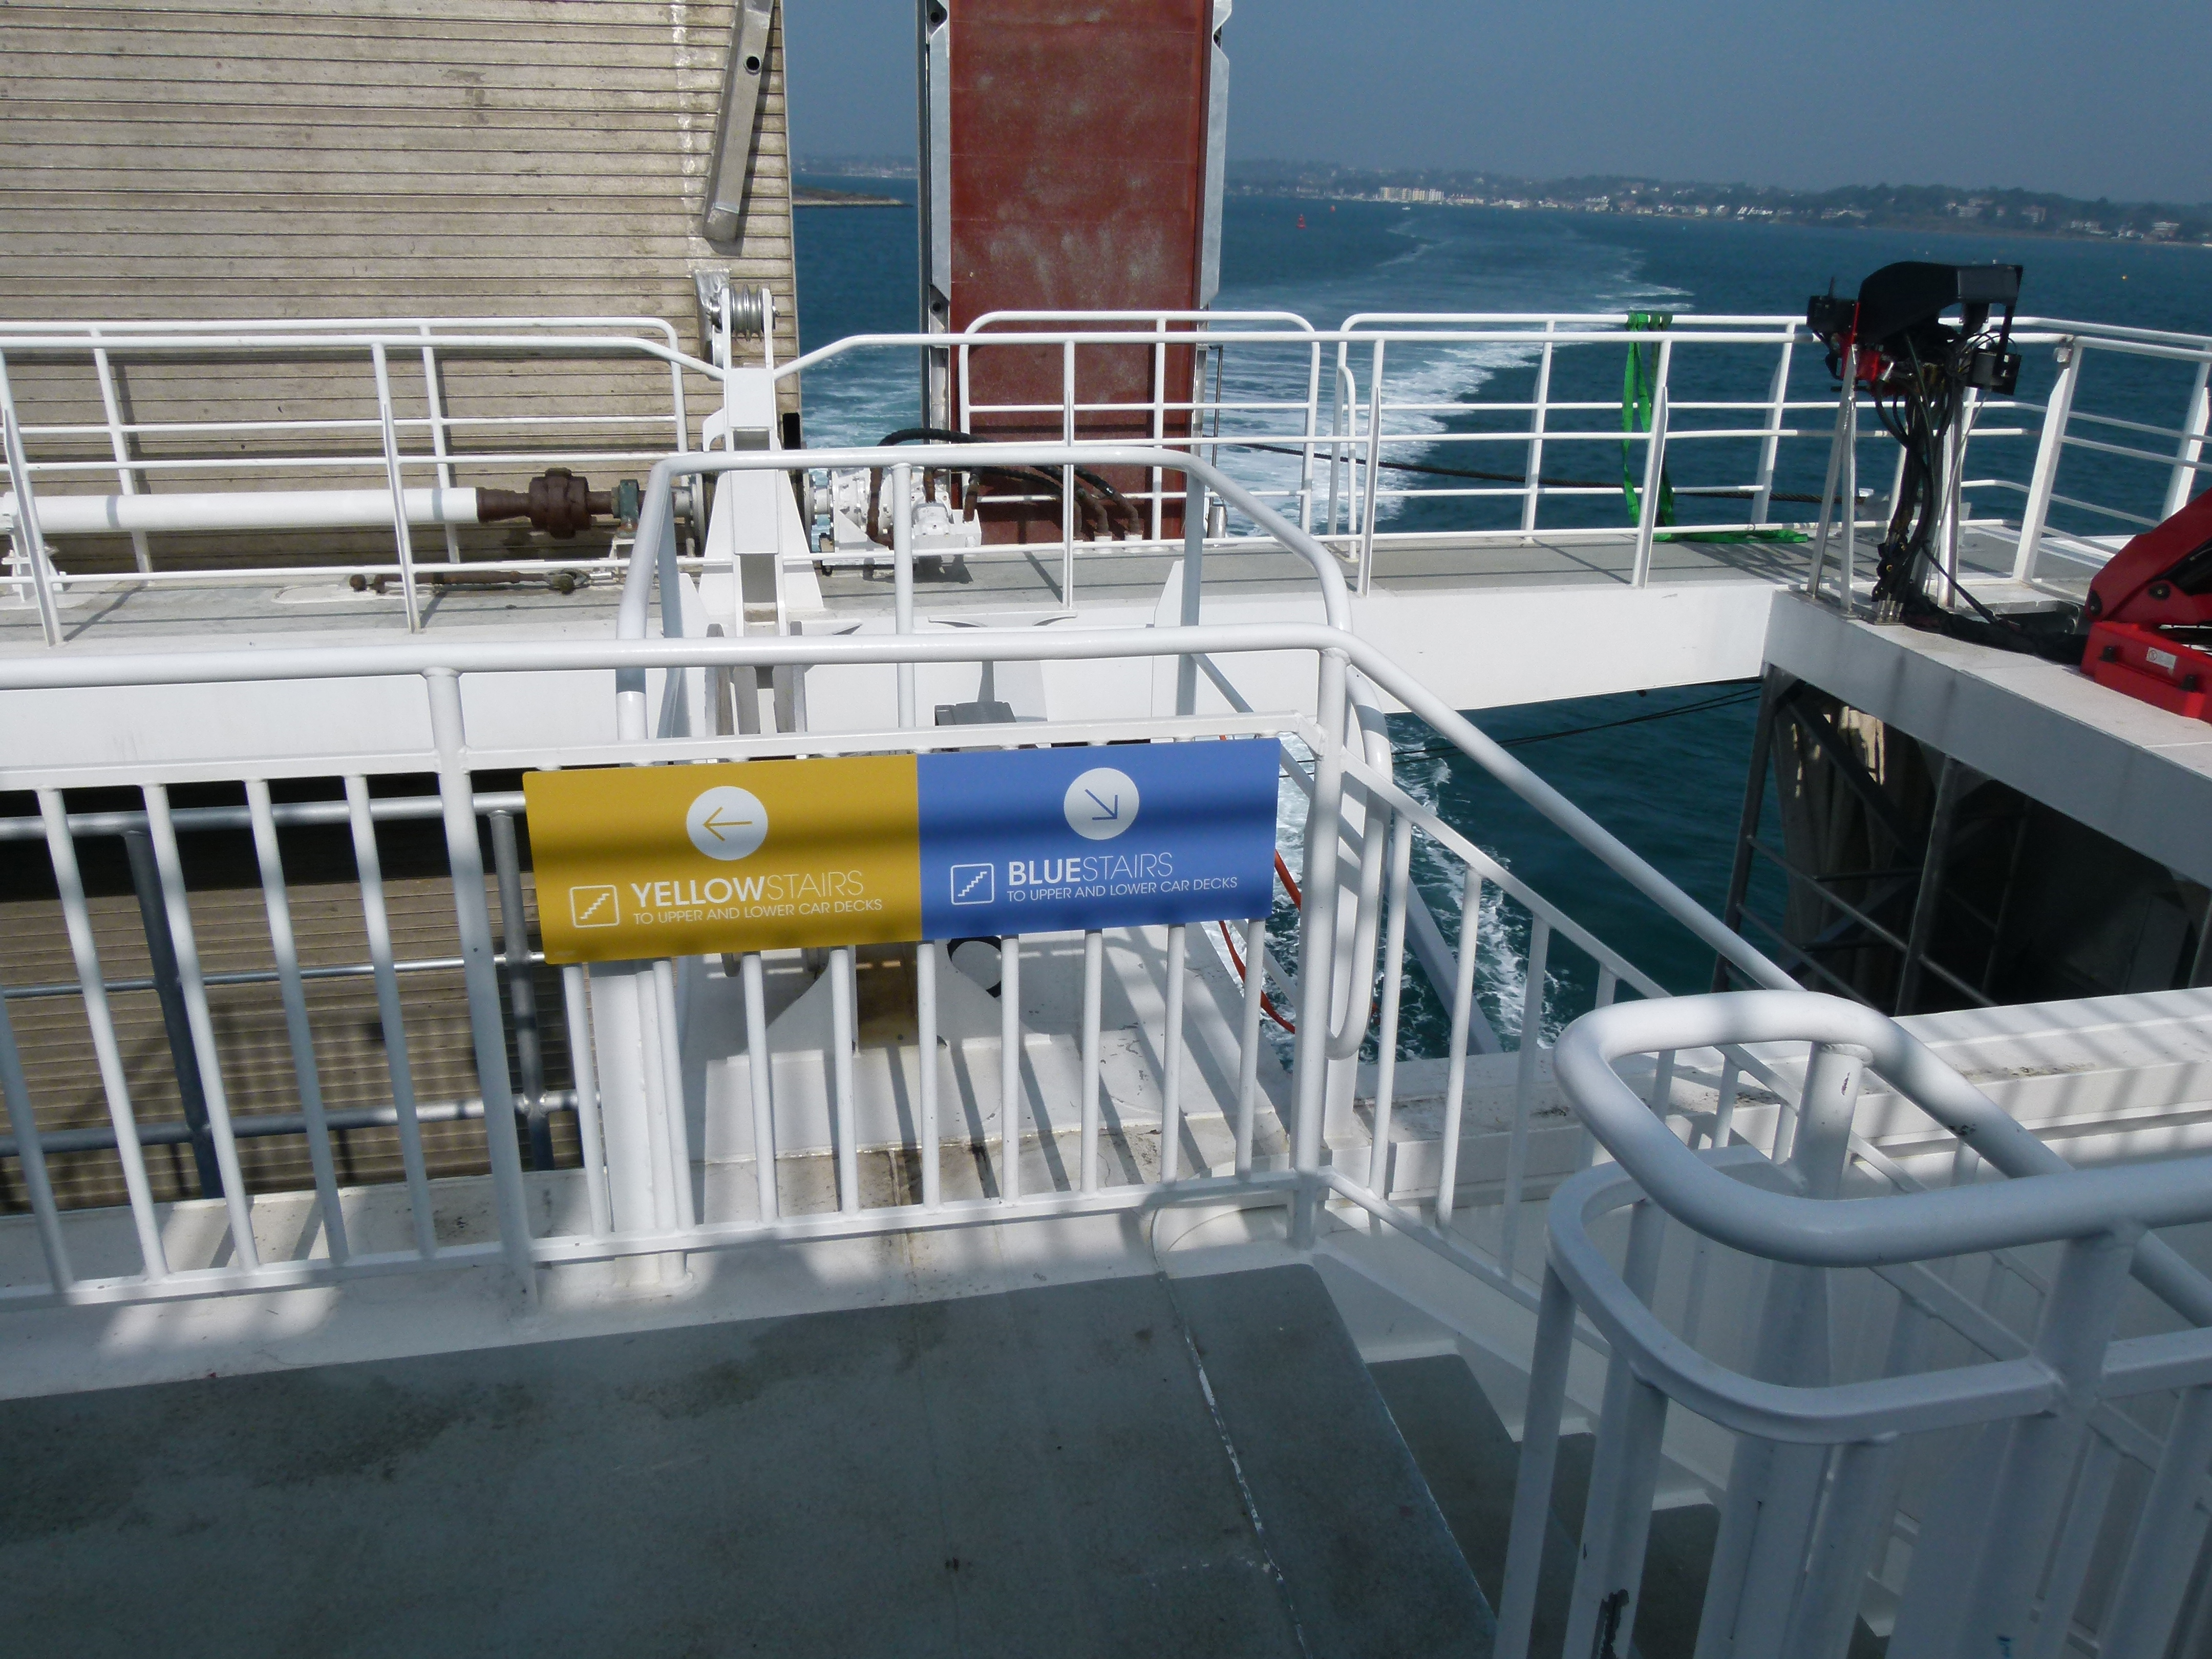 Lower Outside Deck - Blue Stairs to the car deck